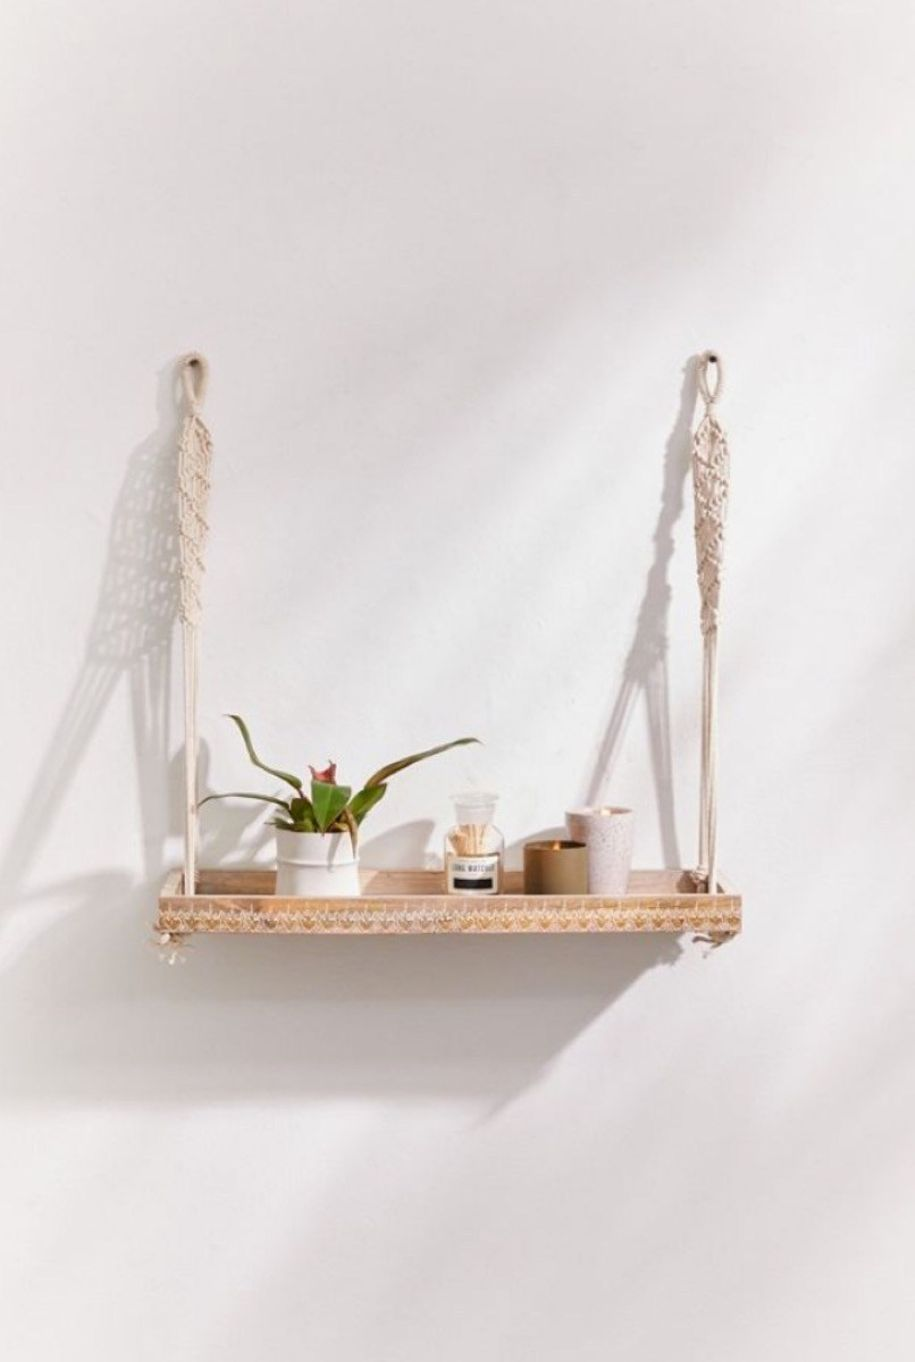 macrame-shelf.jpg?resize=806%2C1200&ssl=1